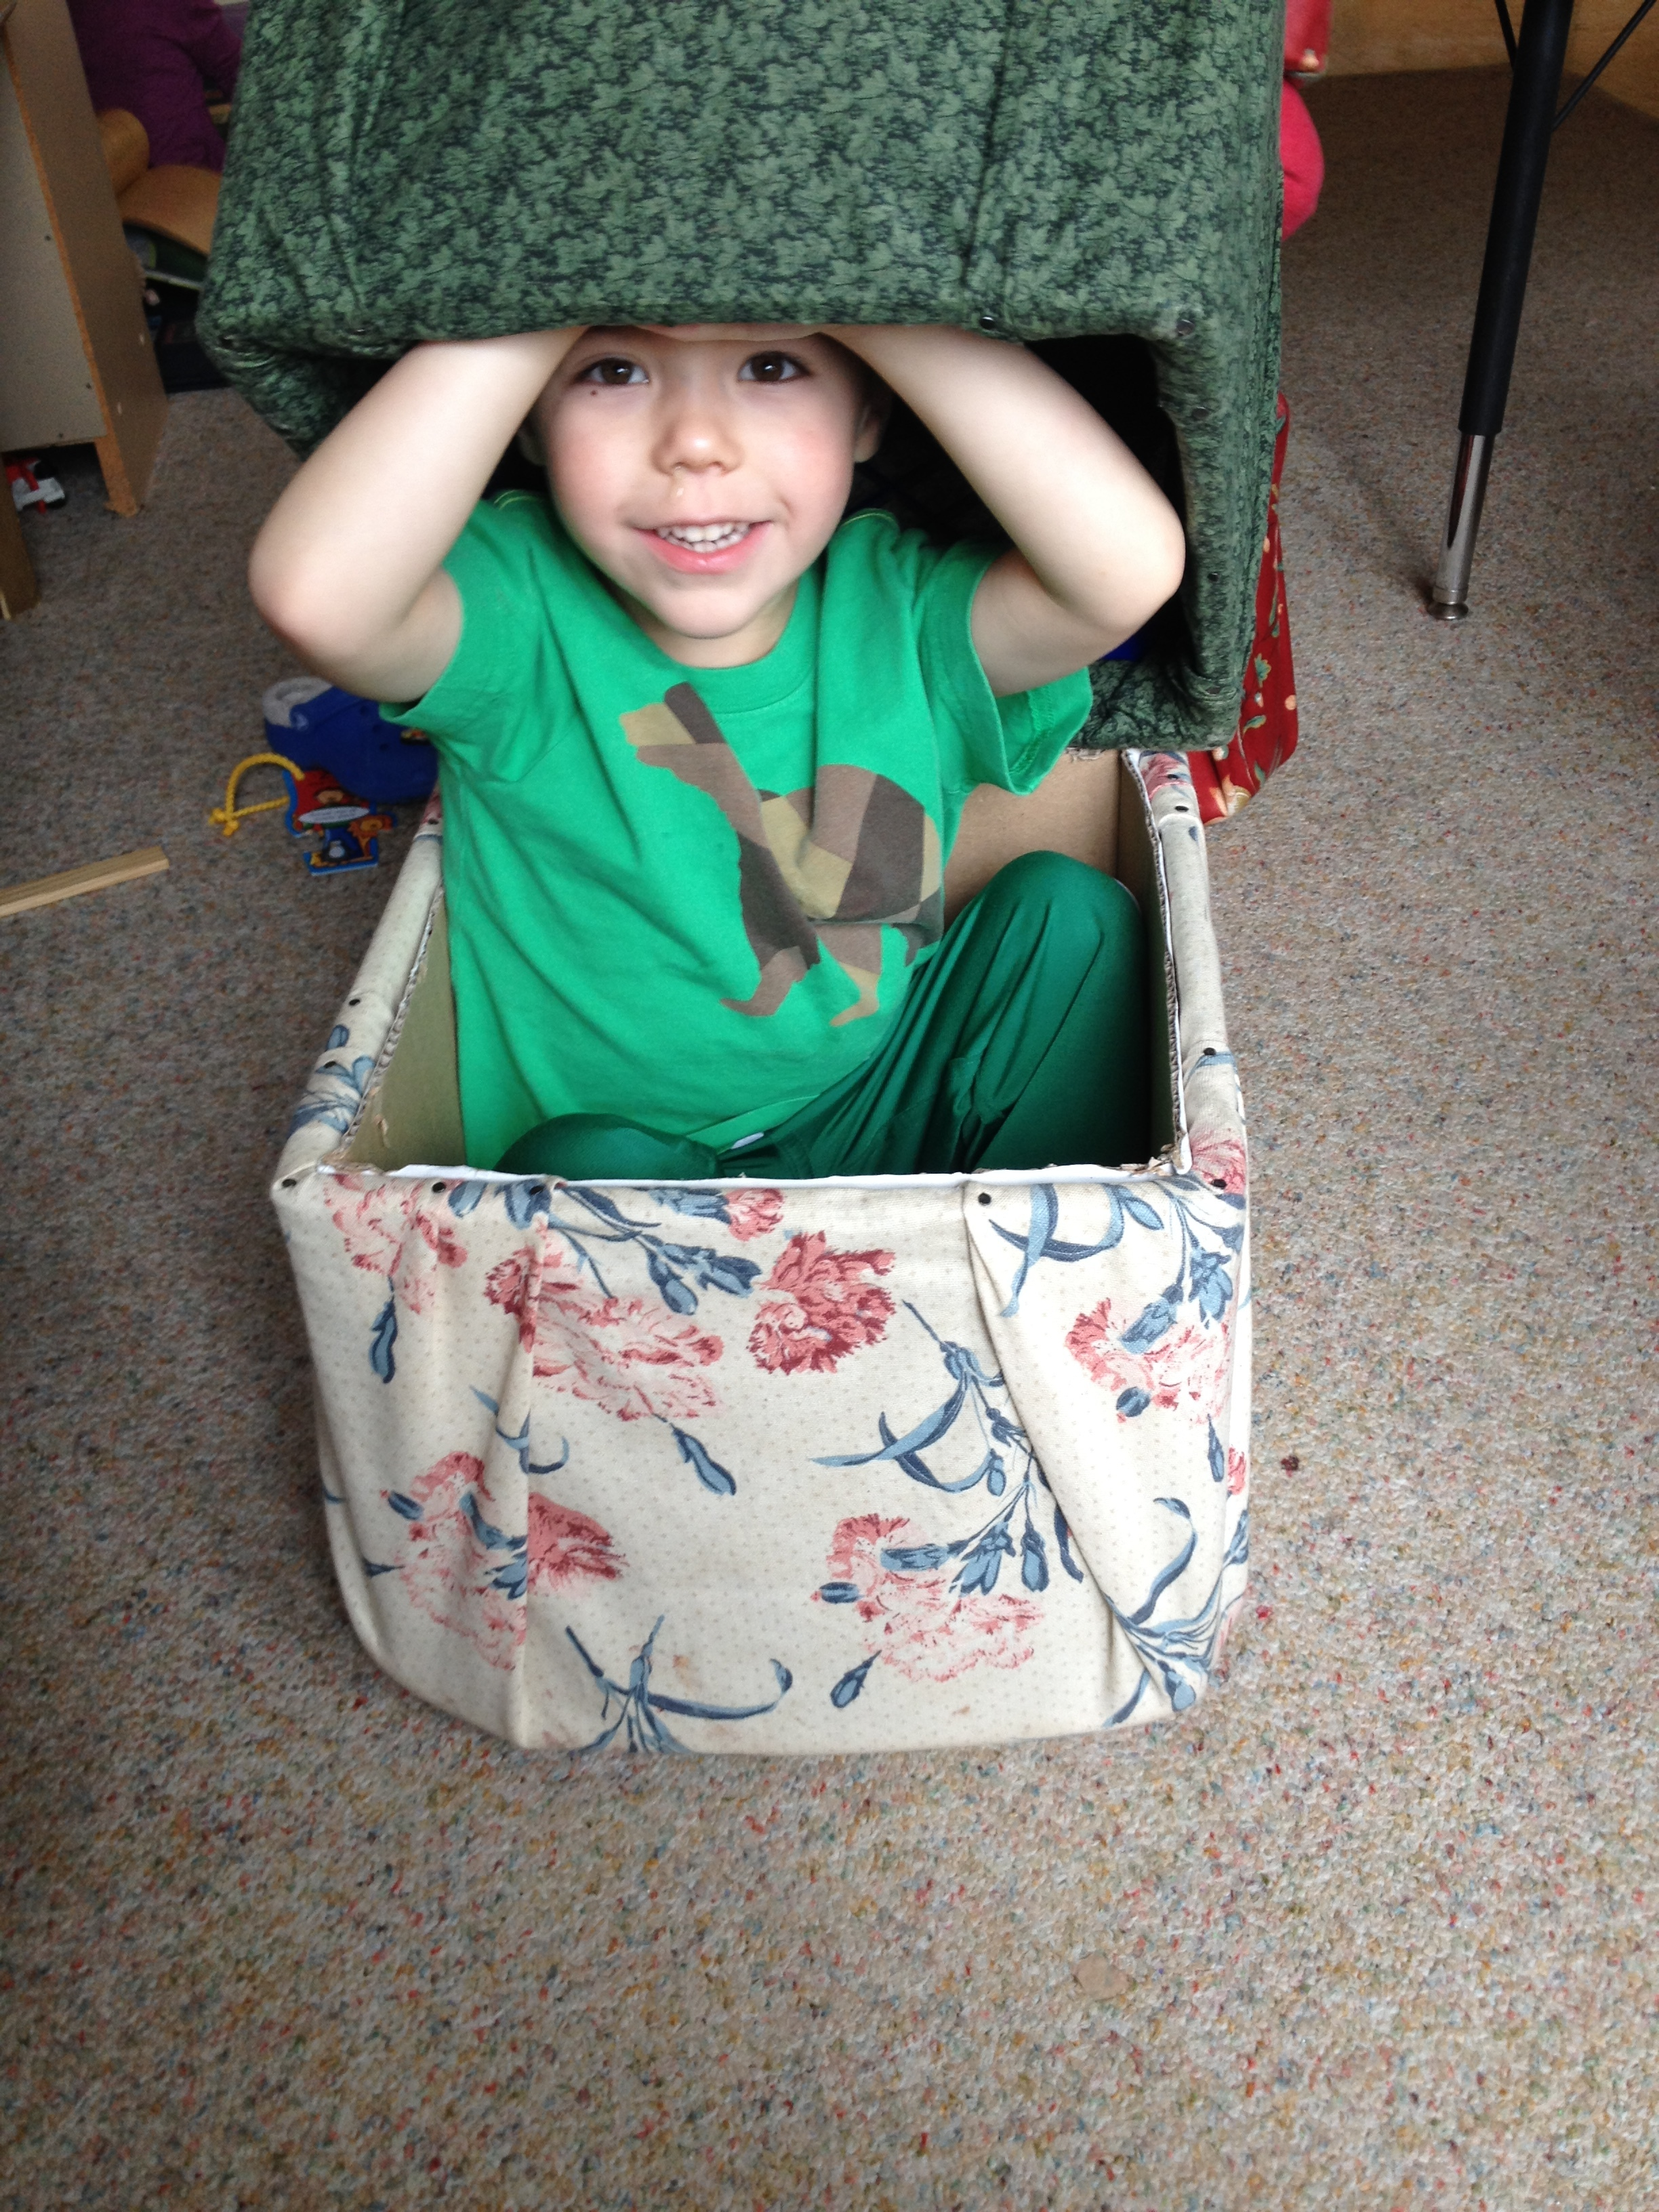 Box chairs are lightweight enough to carry, sturdy enough to be sat upon, and stylish enough to make students want to use them. When they aren't sitting, students can move them about as they see fit. Rocket ships, caves, treasure chests, cars, and trains all become possible with them simple addition of freely movable chairs.